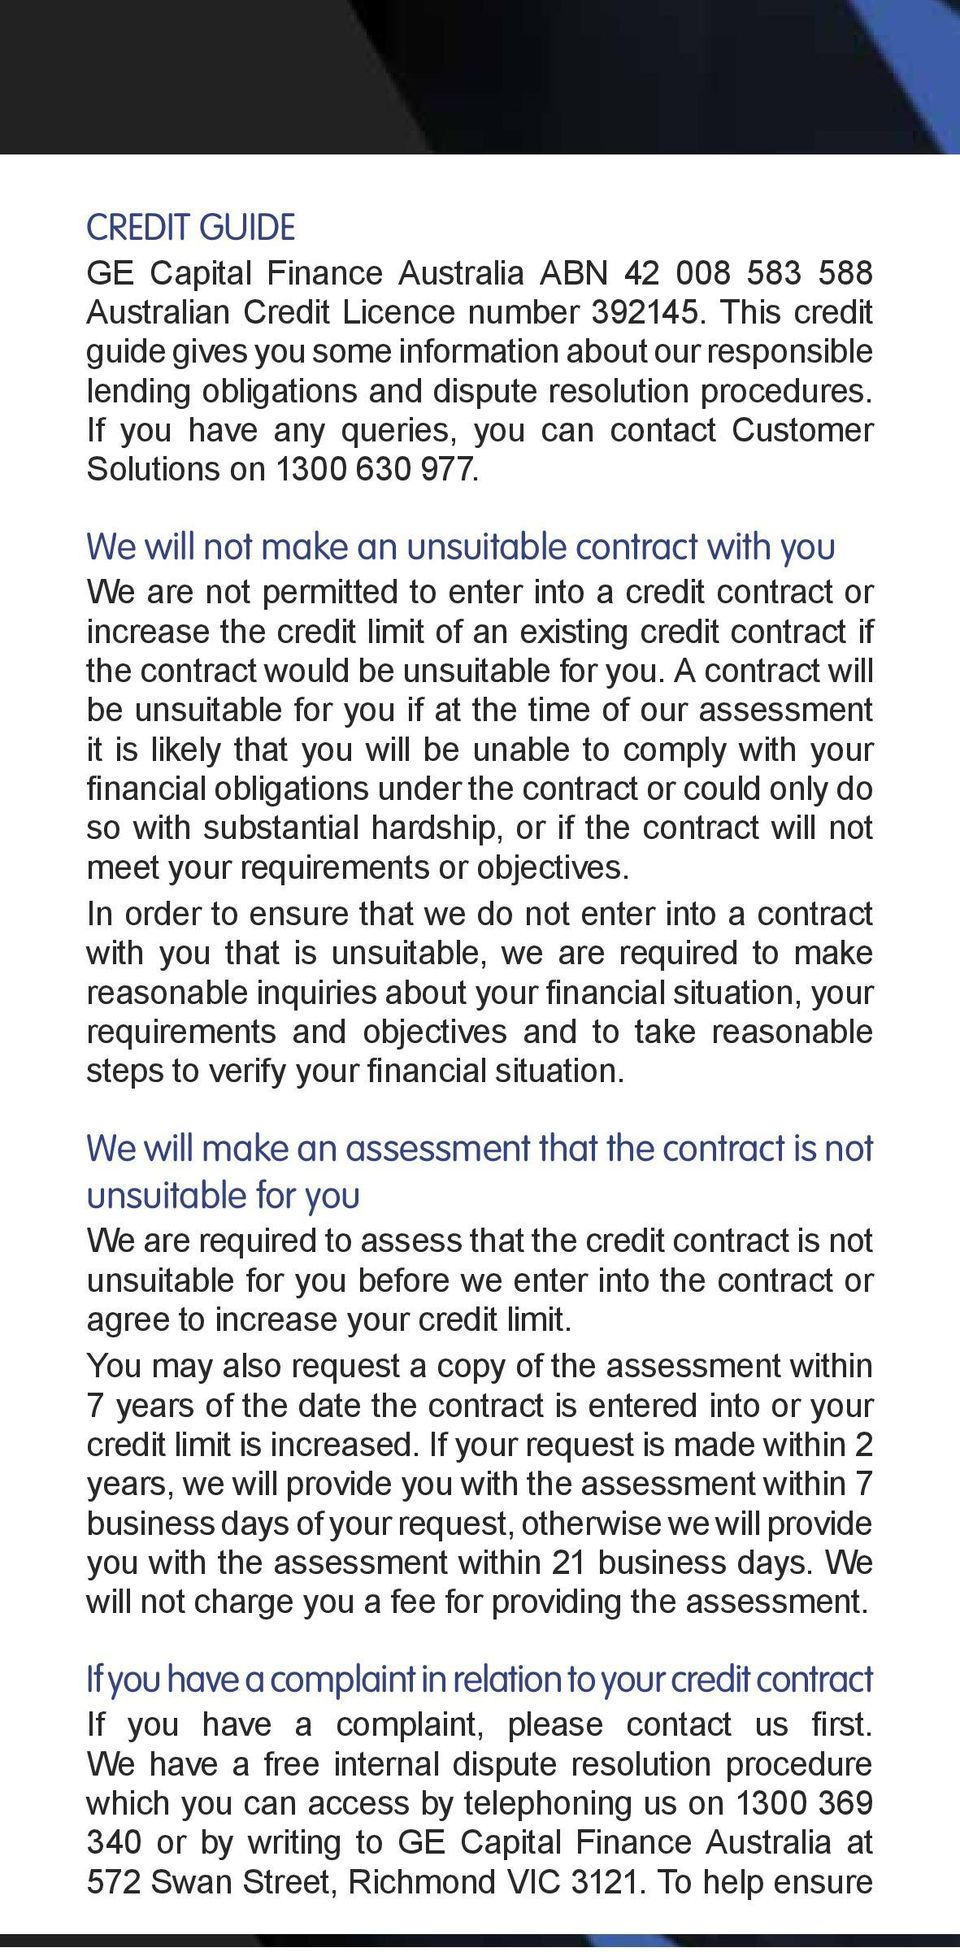 We will not make an unsuitable contract with you We are not permitted to enter into a credit contract or increase the credit limit of an existing credit contract if the contract would be unsuitable